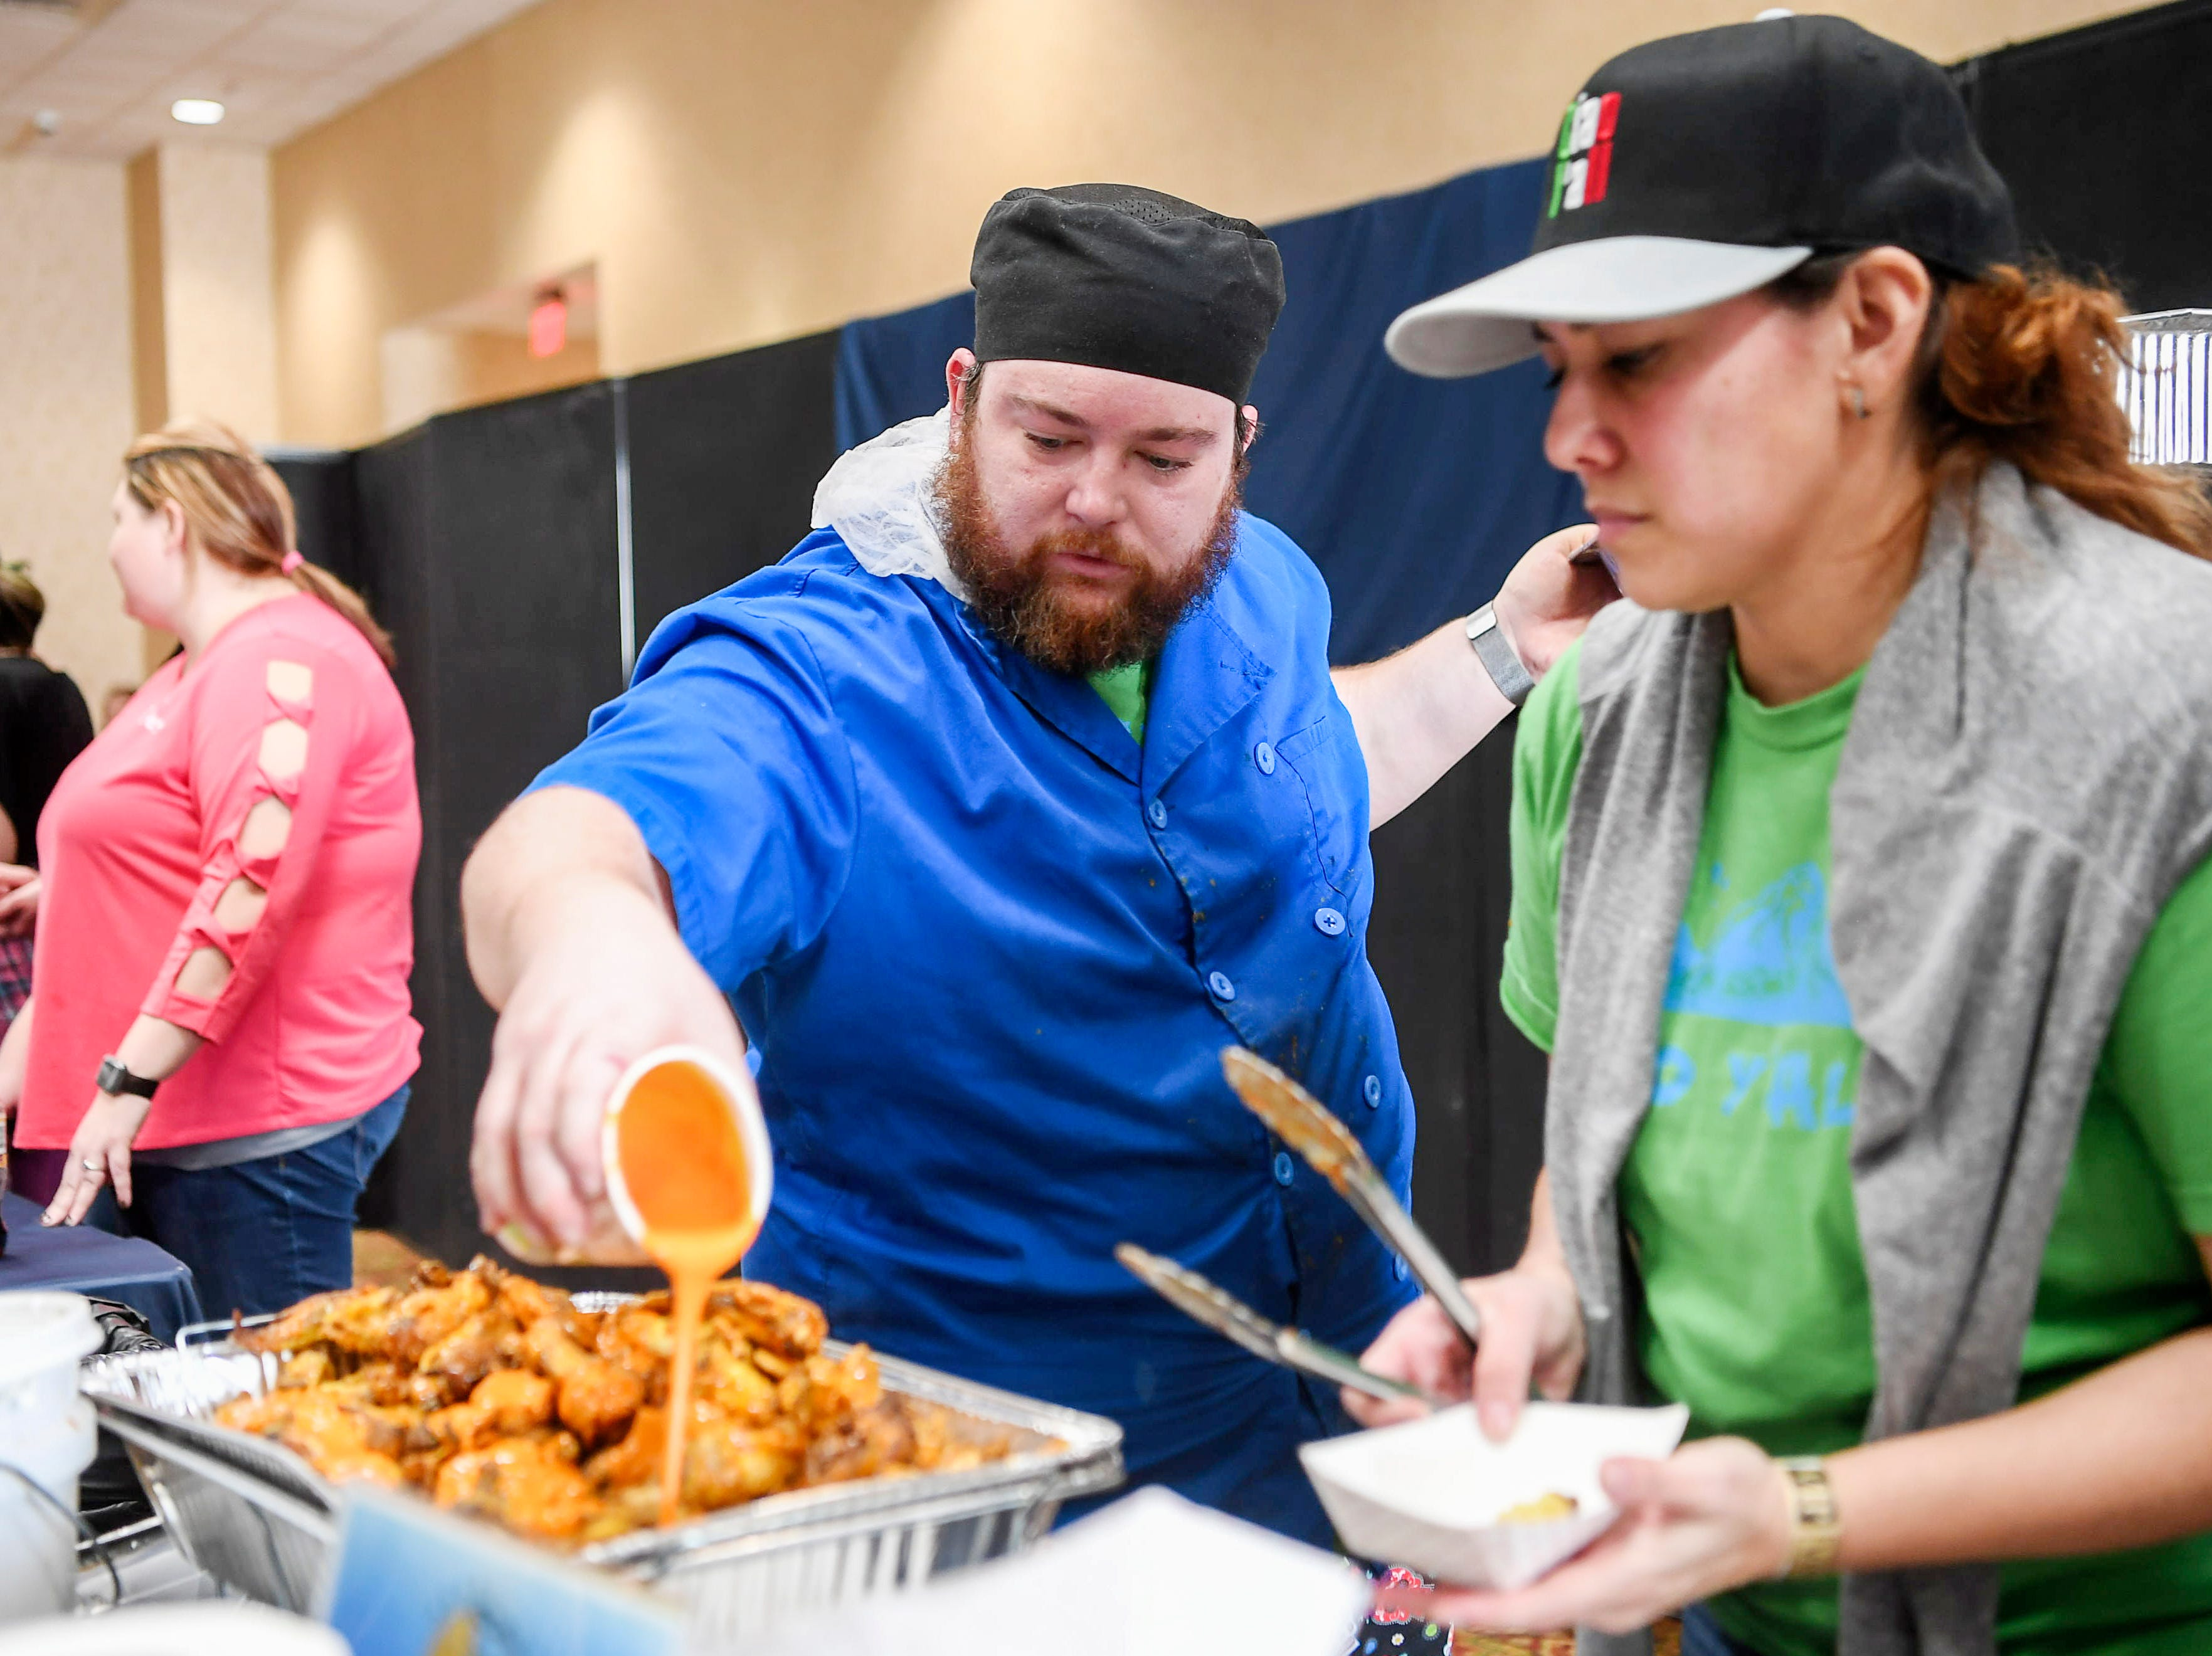 The team from the Ciao Y'all Food Truck serves up wings during the 8th annual Asheville Wing War at the Crowne Plaza March 10, 2019 in Asheville.